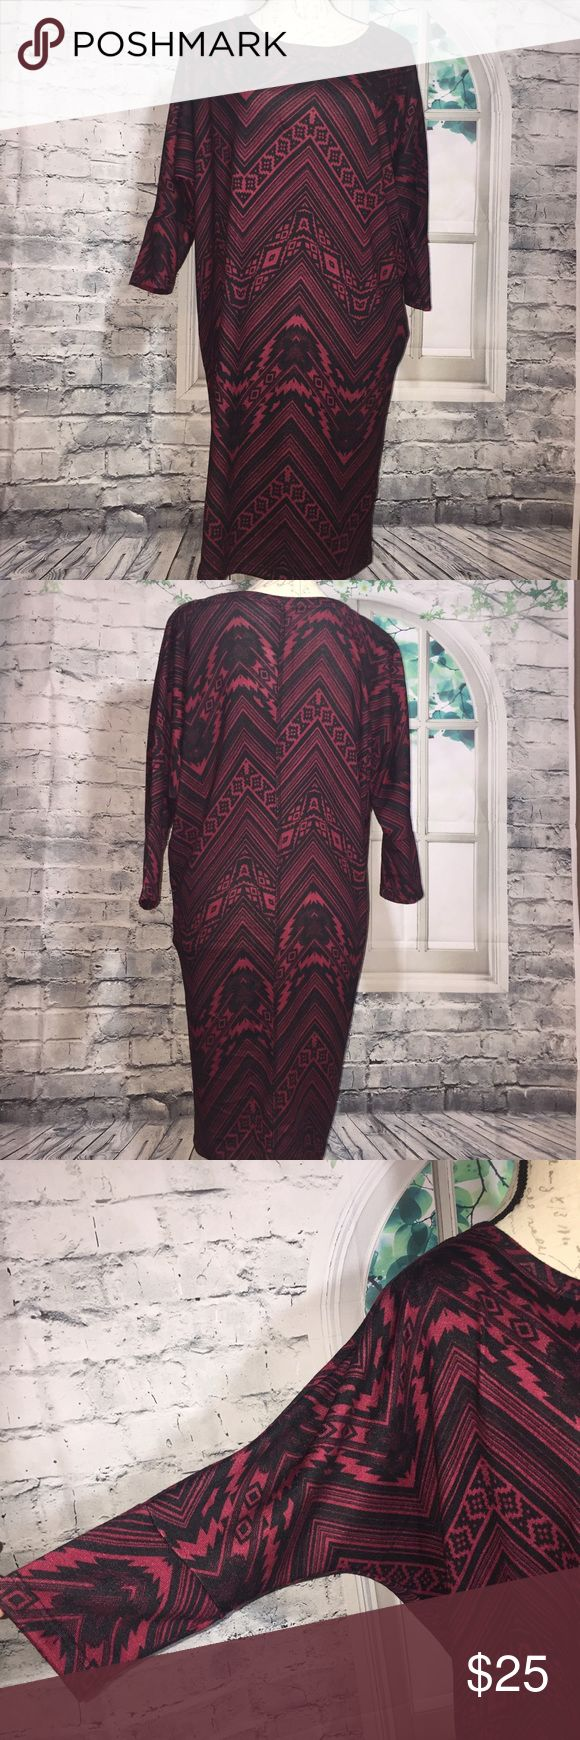 "Nordstrom Bobeau Sweater Tunic Dress M Made in USA Nordstrom Bobeau Sweater Tunic Dress Aztec Medium Black Red Made in USA • Batwing 3/4 Sleeves • Approx. Length: 35"" •Arm pit to arm pit: 24"" • 95% Polyester; 5% Spandex • Machine wash • Aztec pattern • Perfect for the cooler days • Retail:$62 • Bought from Nordstrom bobeau Tops Tunics"